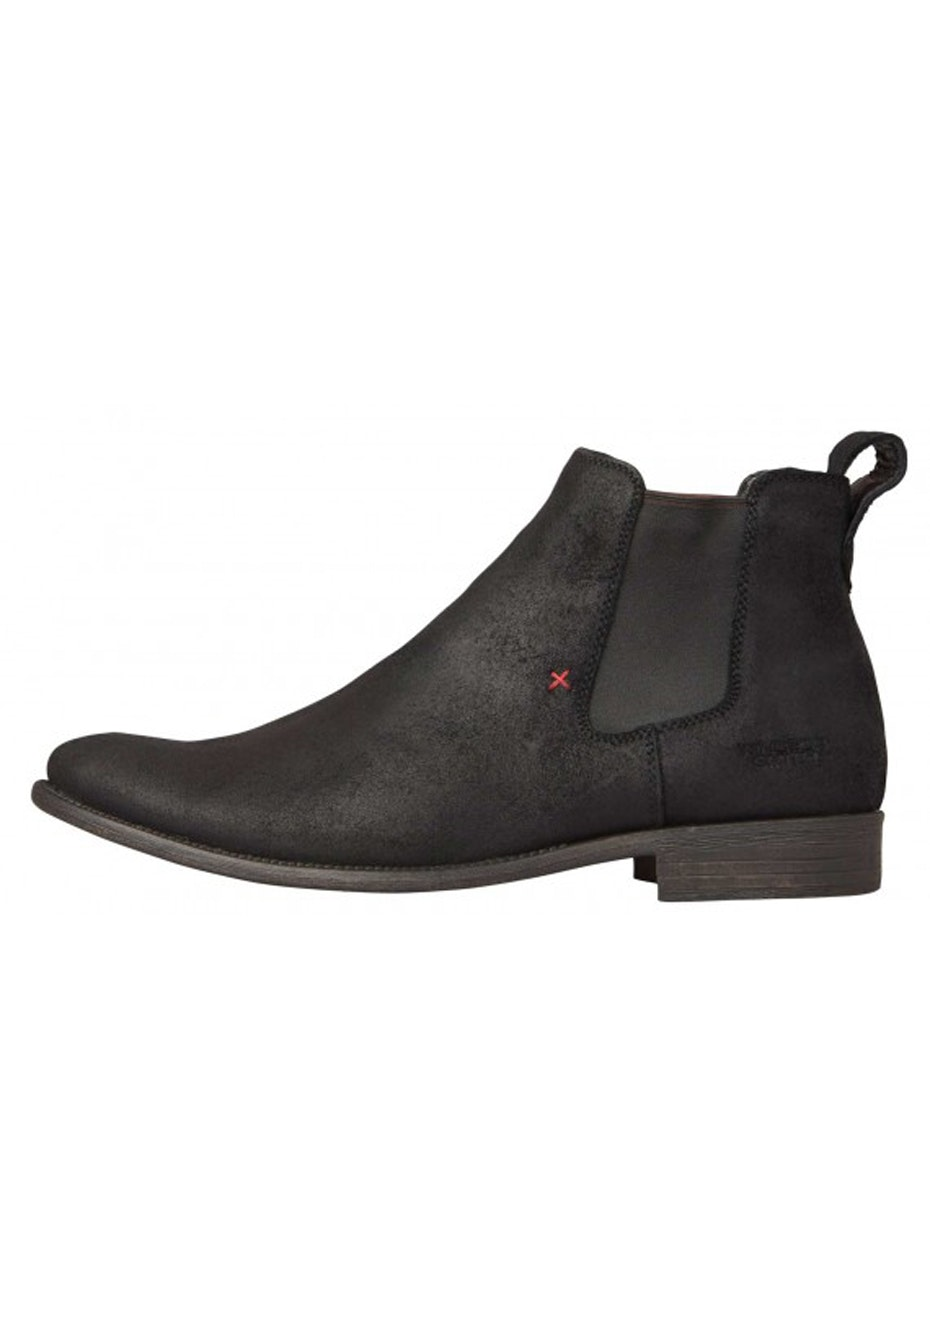 Windsor Smith - Princeton - Black Oil Suede